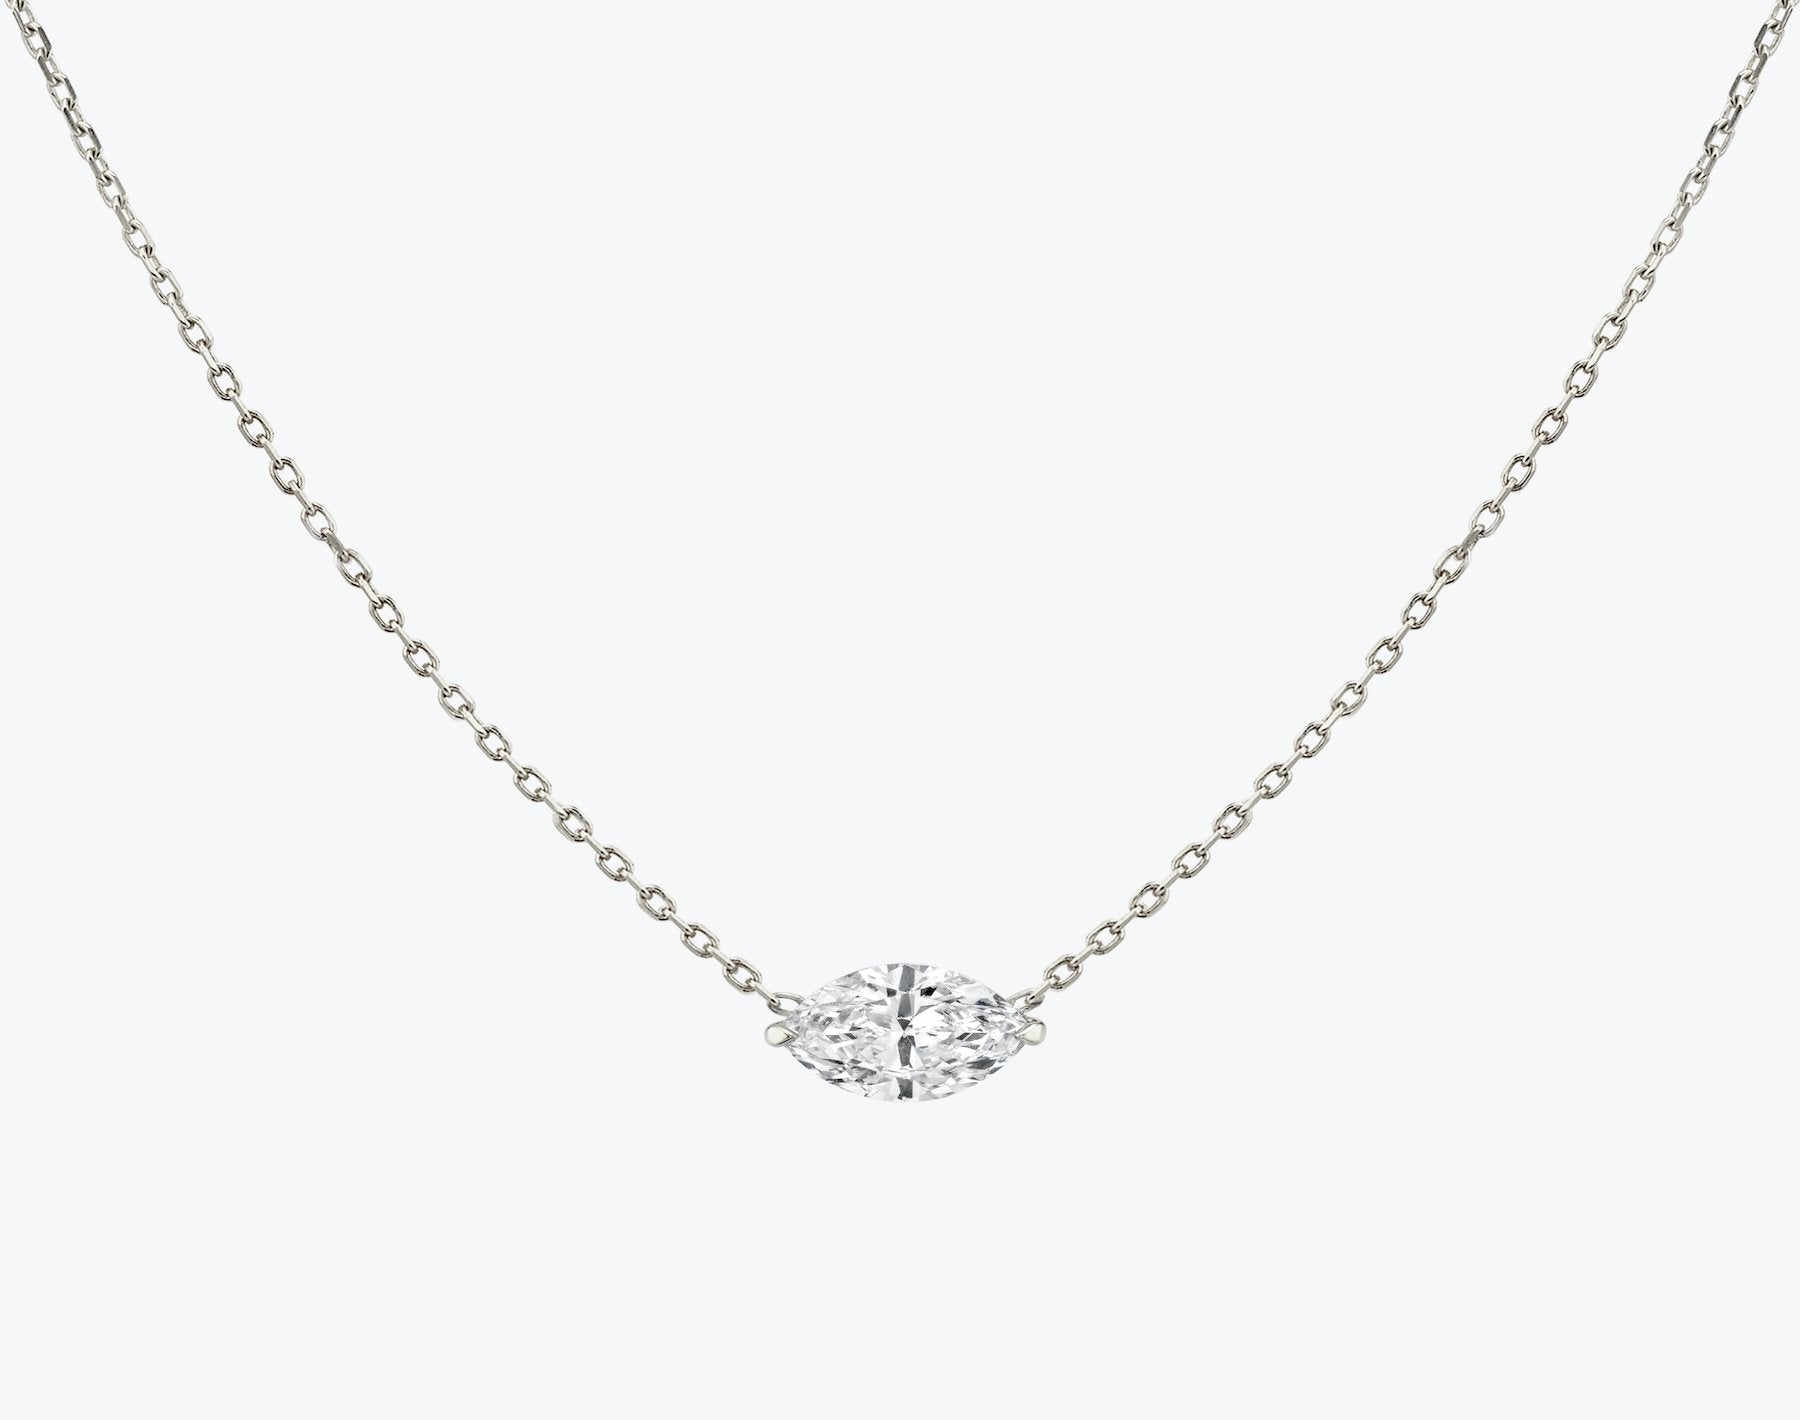 Vrai 14K solid gold solitaire marquise diamond necklace 1ct minimalist delicate, 14K White Gold